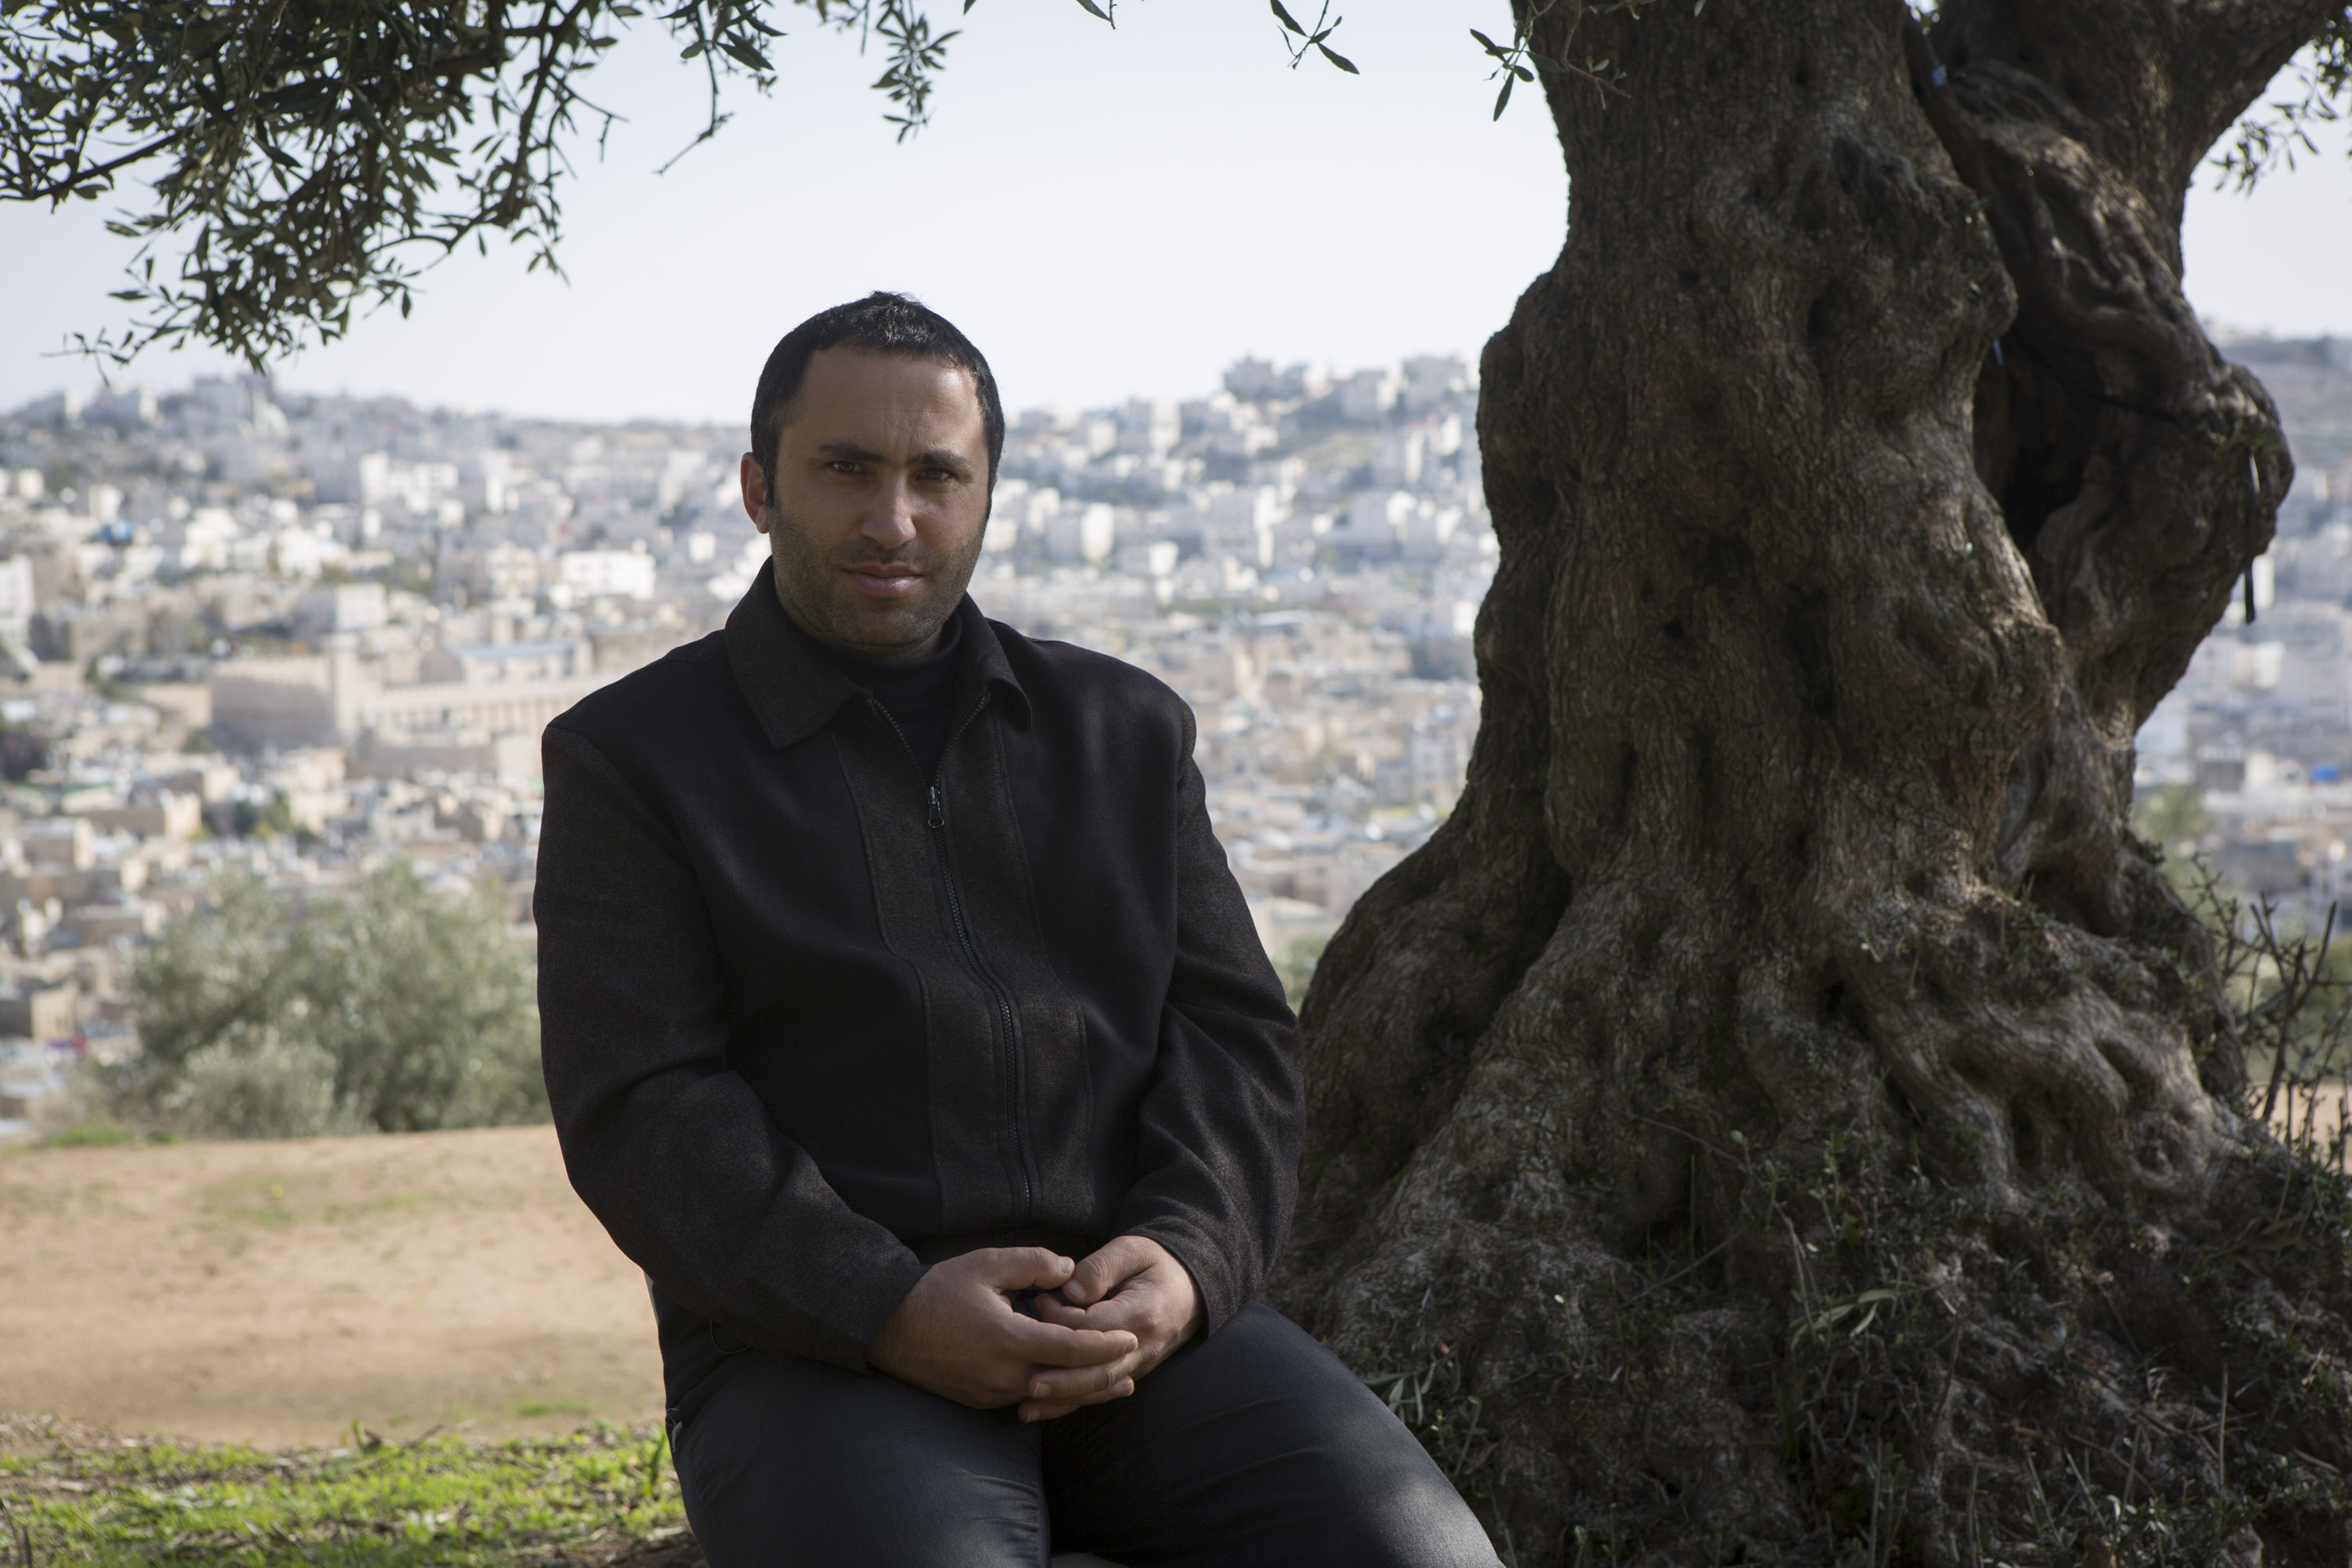 Palestinian human rights activist Issa Amro.  Photo: electronicintifada.net